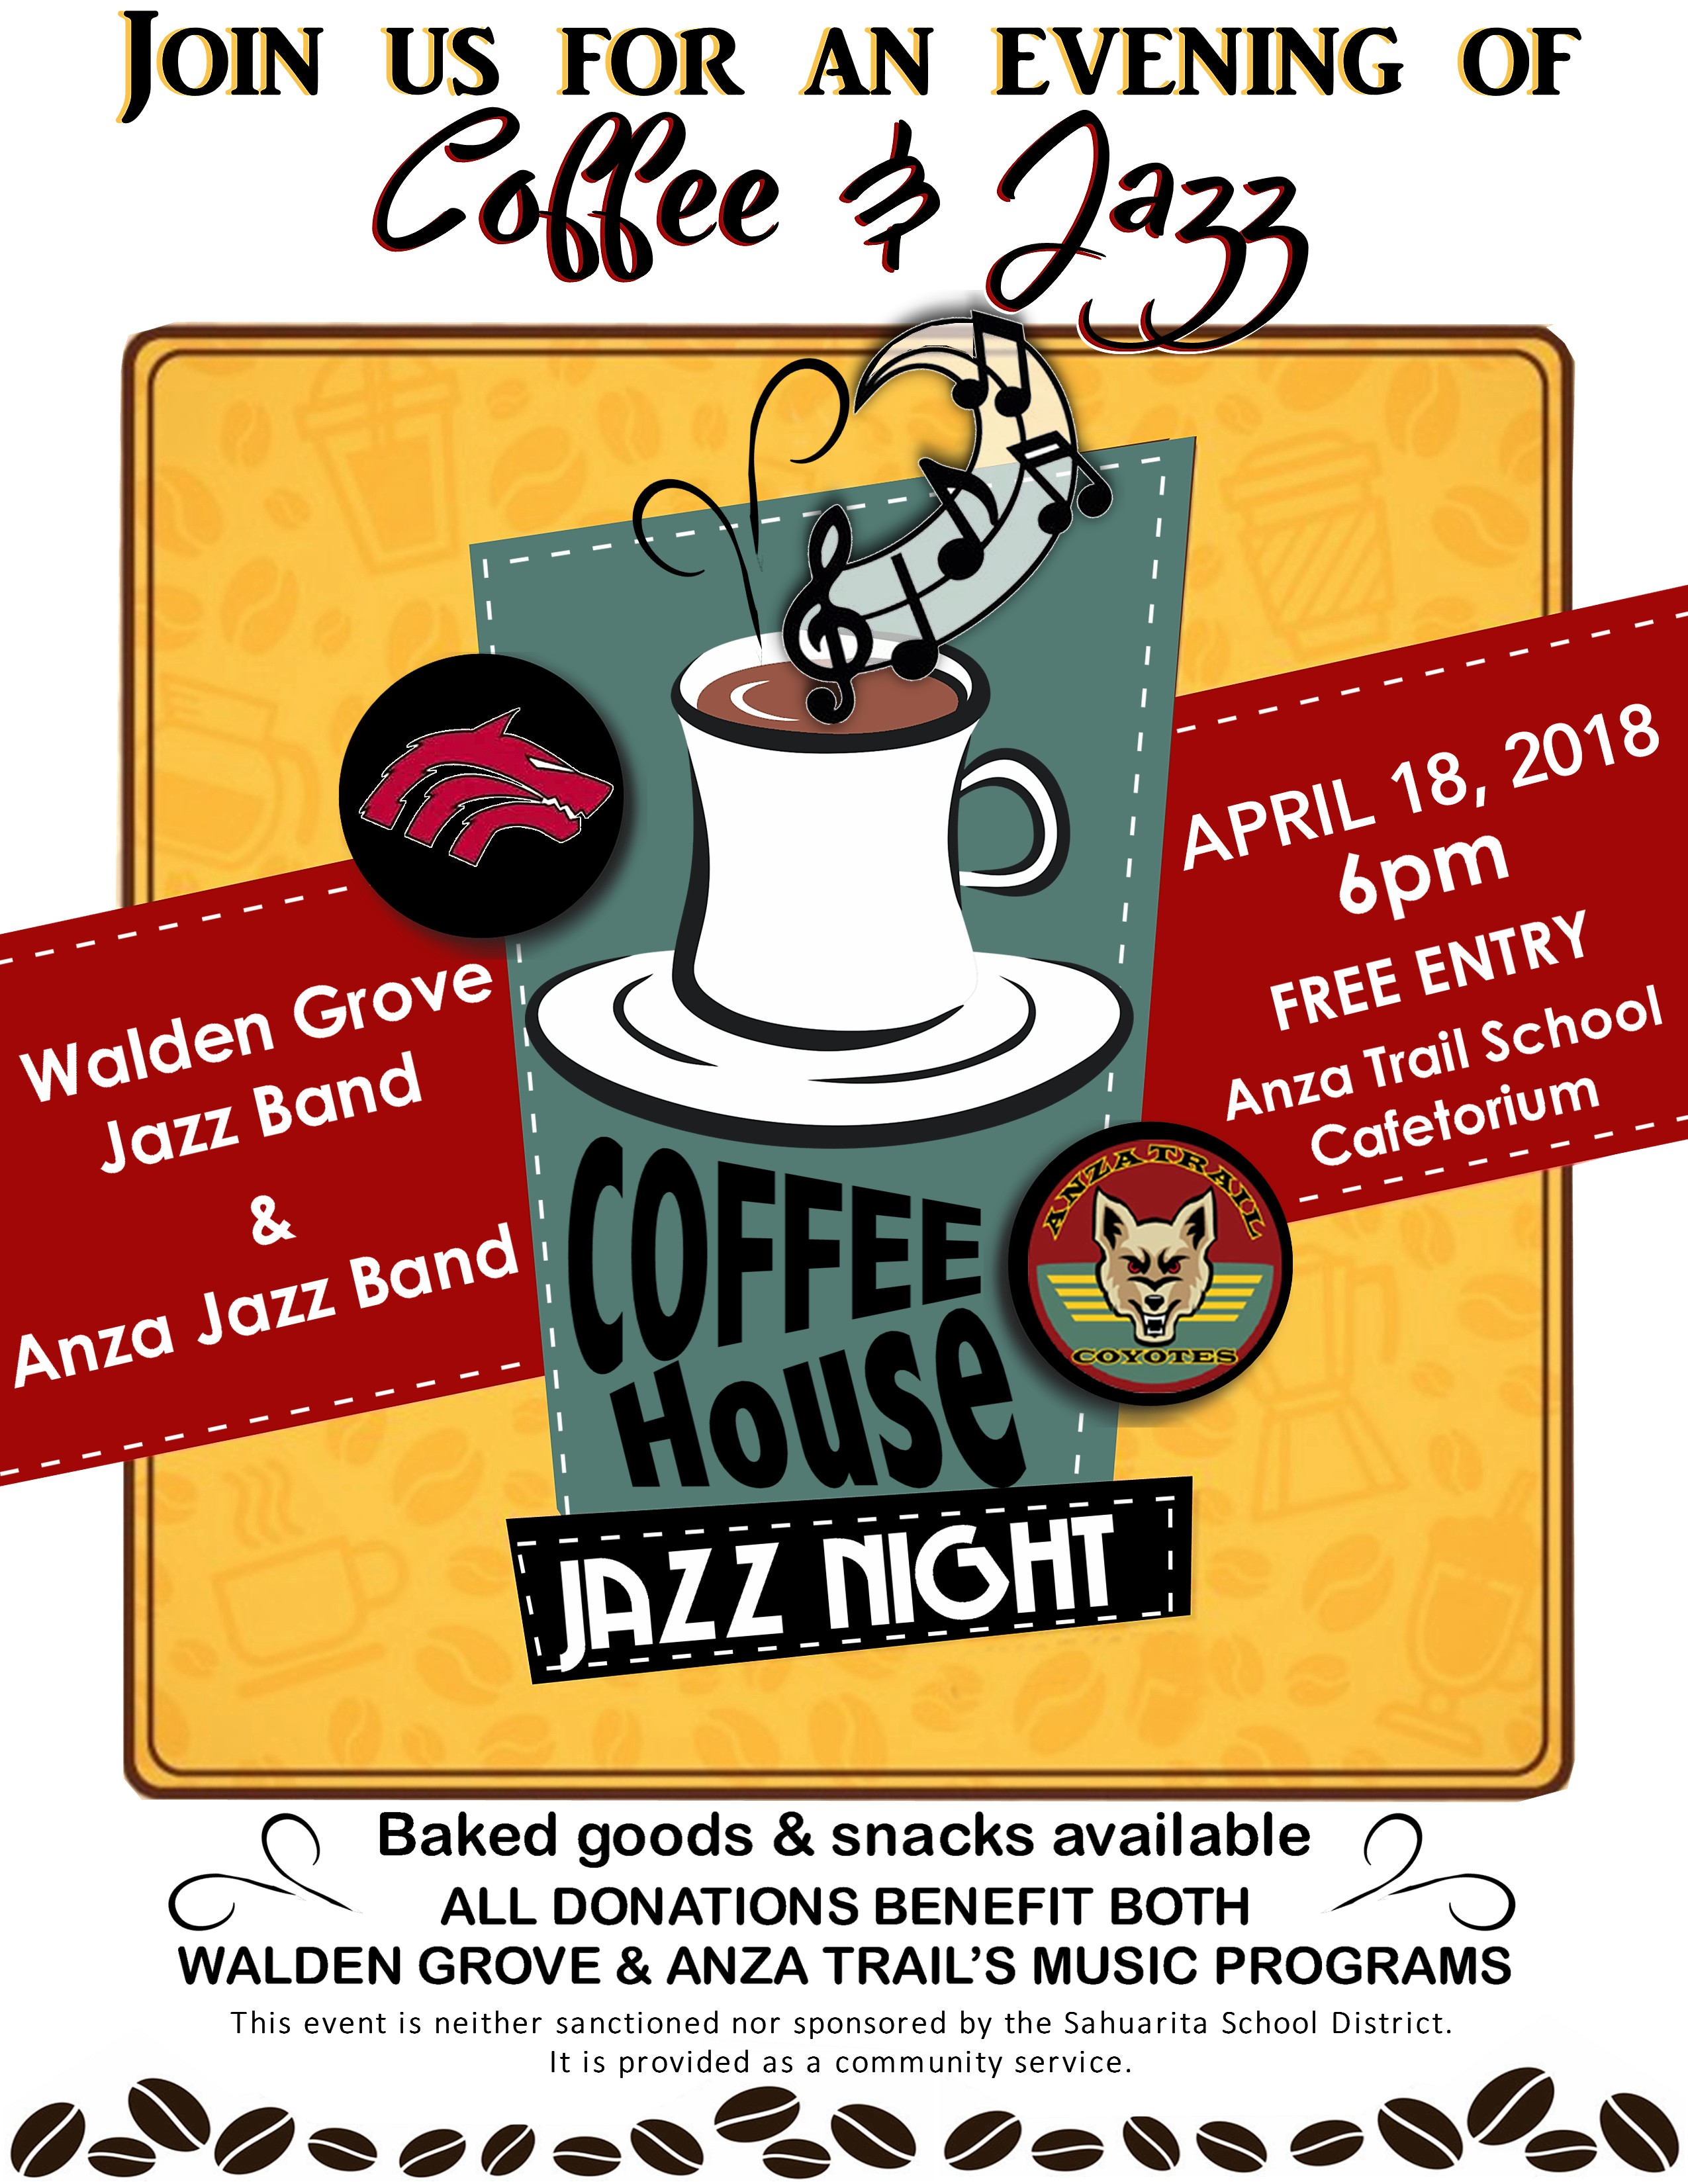 Coffee House Jazz Night 04/04/18 6pm at Anza Trail Cafetorium